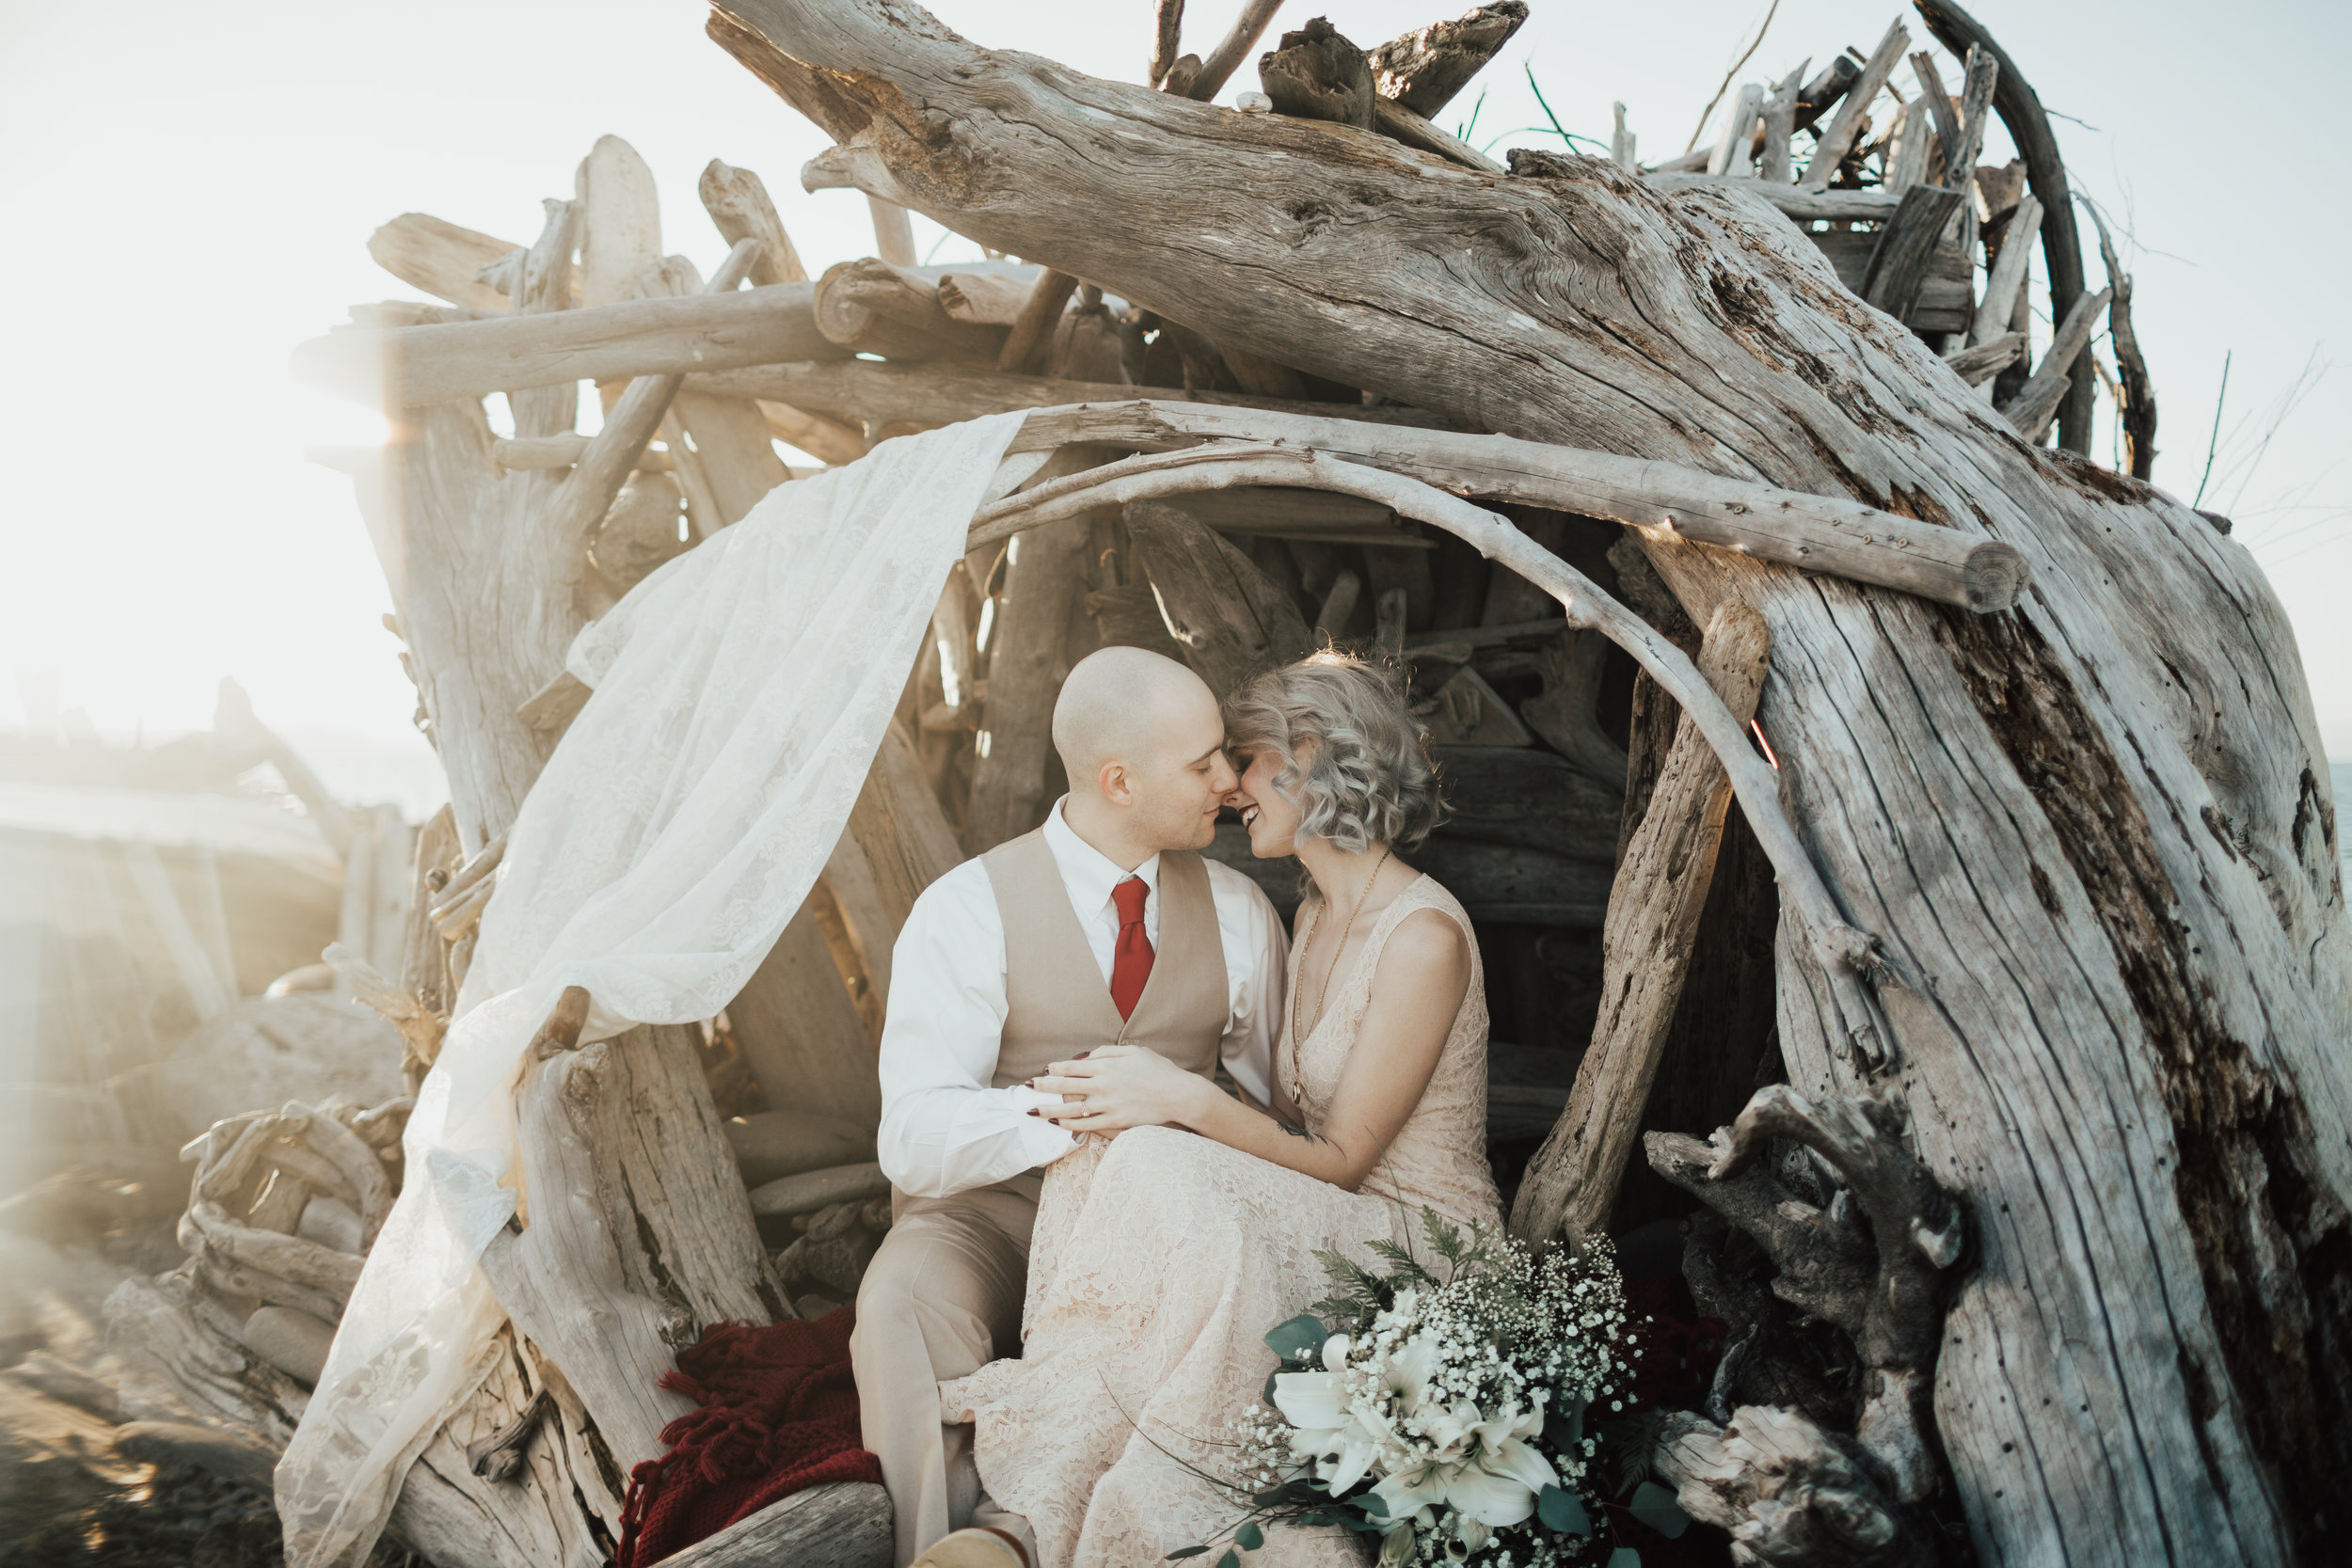 Port Angeles-PNW-Sequim-Portrait-wedding-elopement-photographer-kayladawnphoto-kayla dawn photography-olympic peninsula-portraiture81.jpg